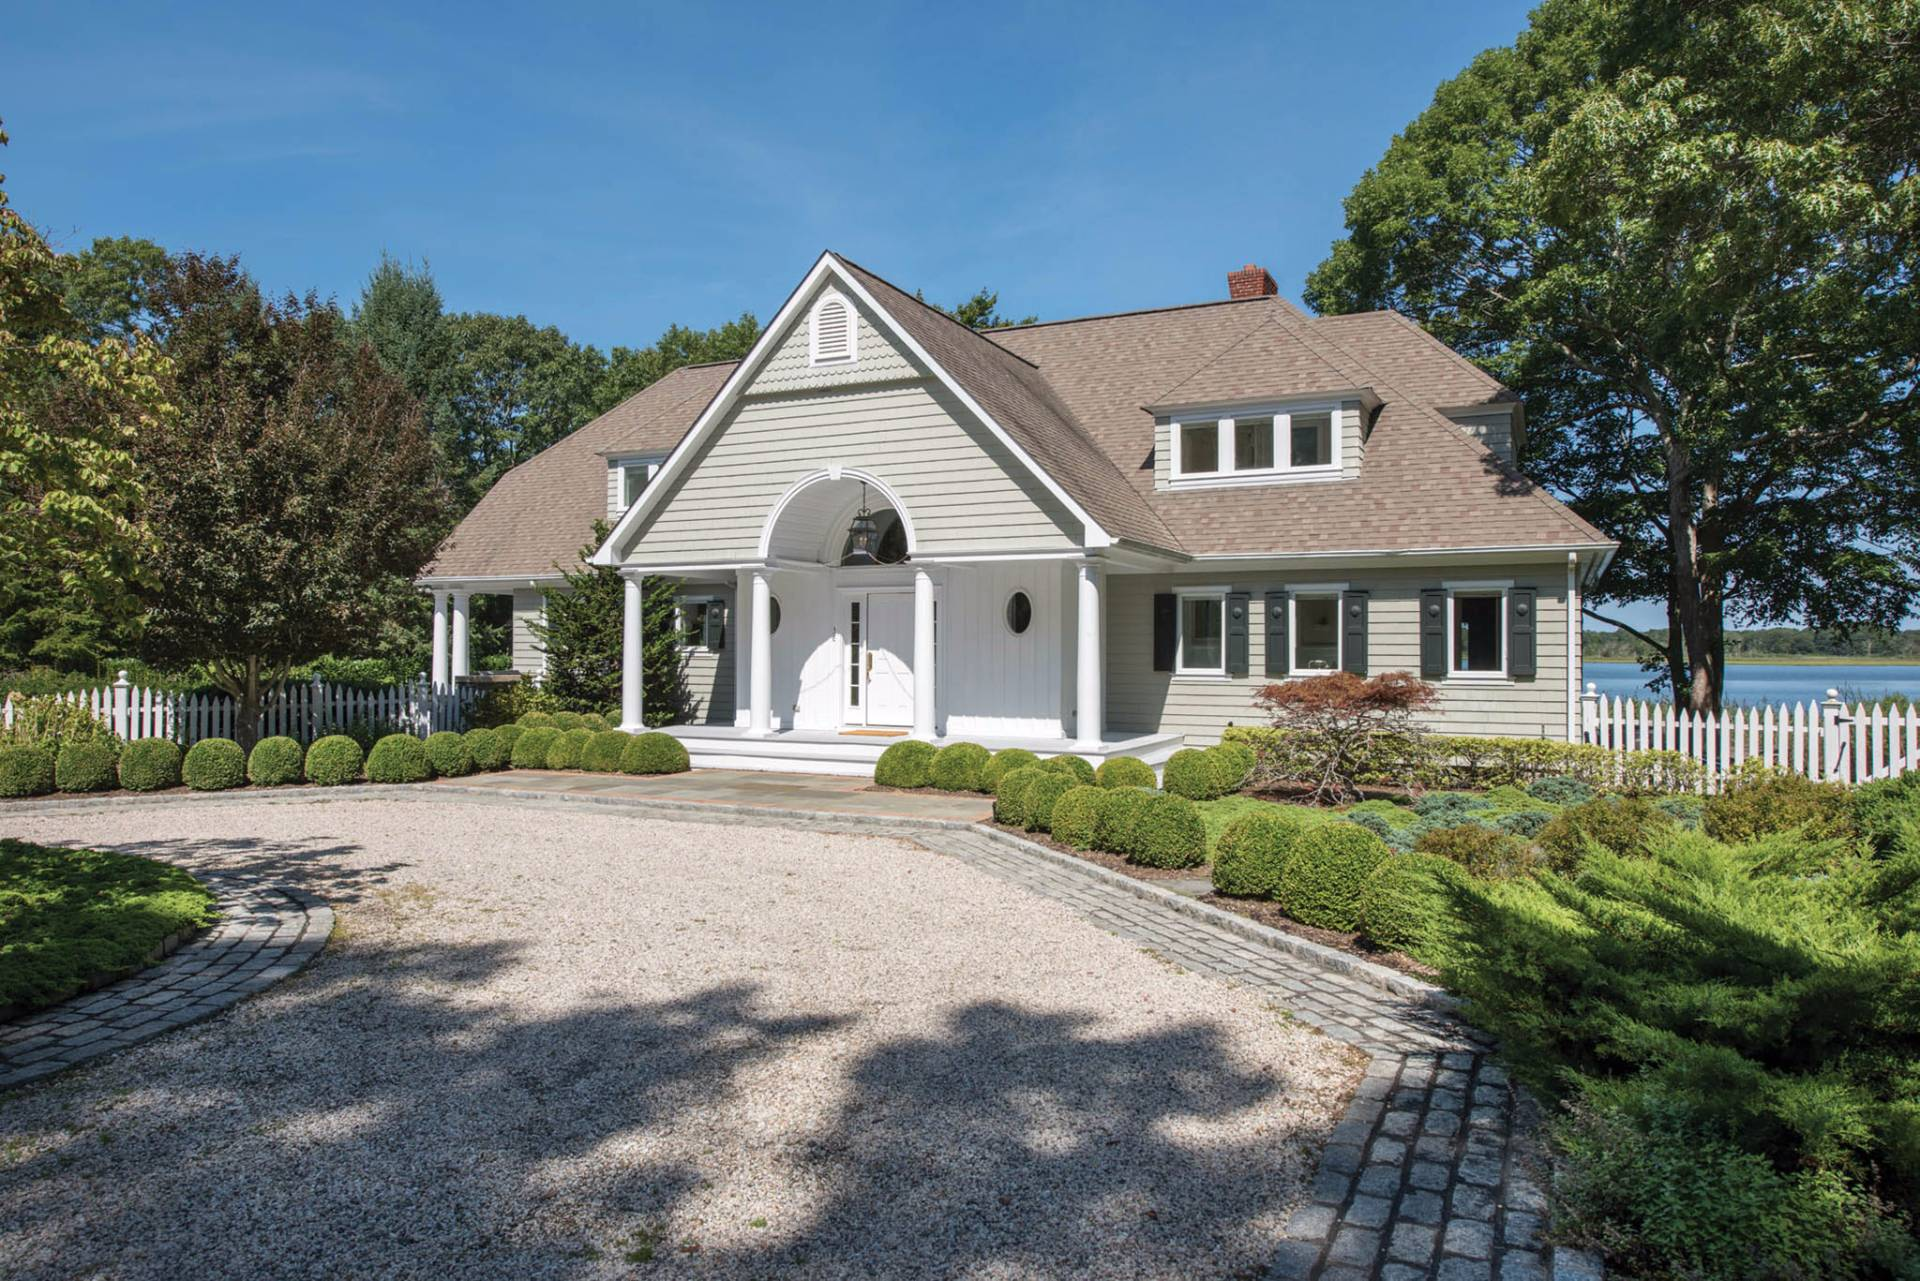 Single Family Home for Sale at Beautiful Southampton Waterfront With Dock 36 And 40a Island Creek Road, Southampton, New York